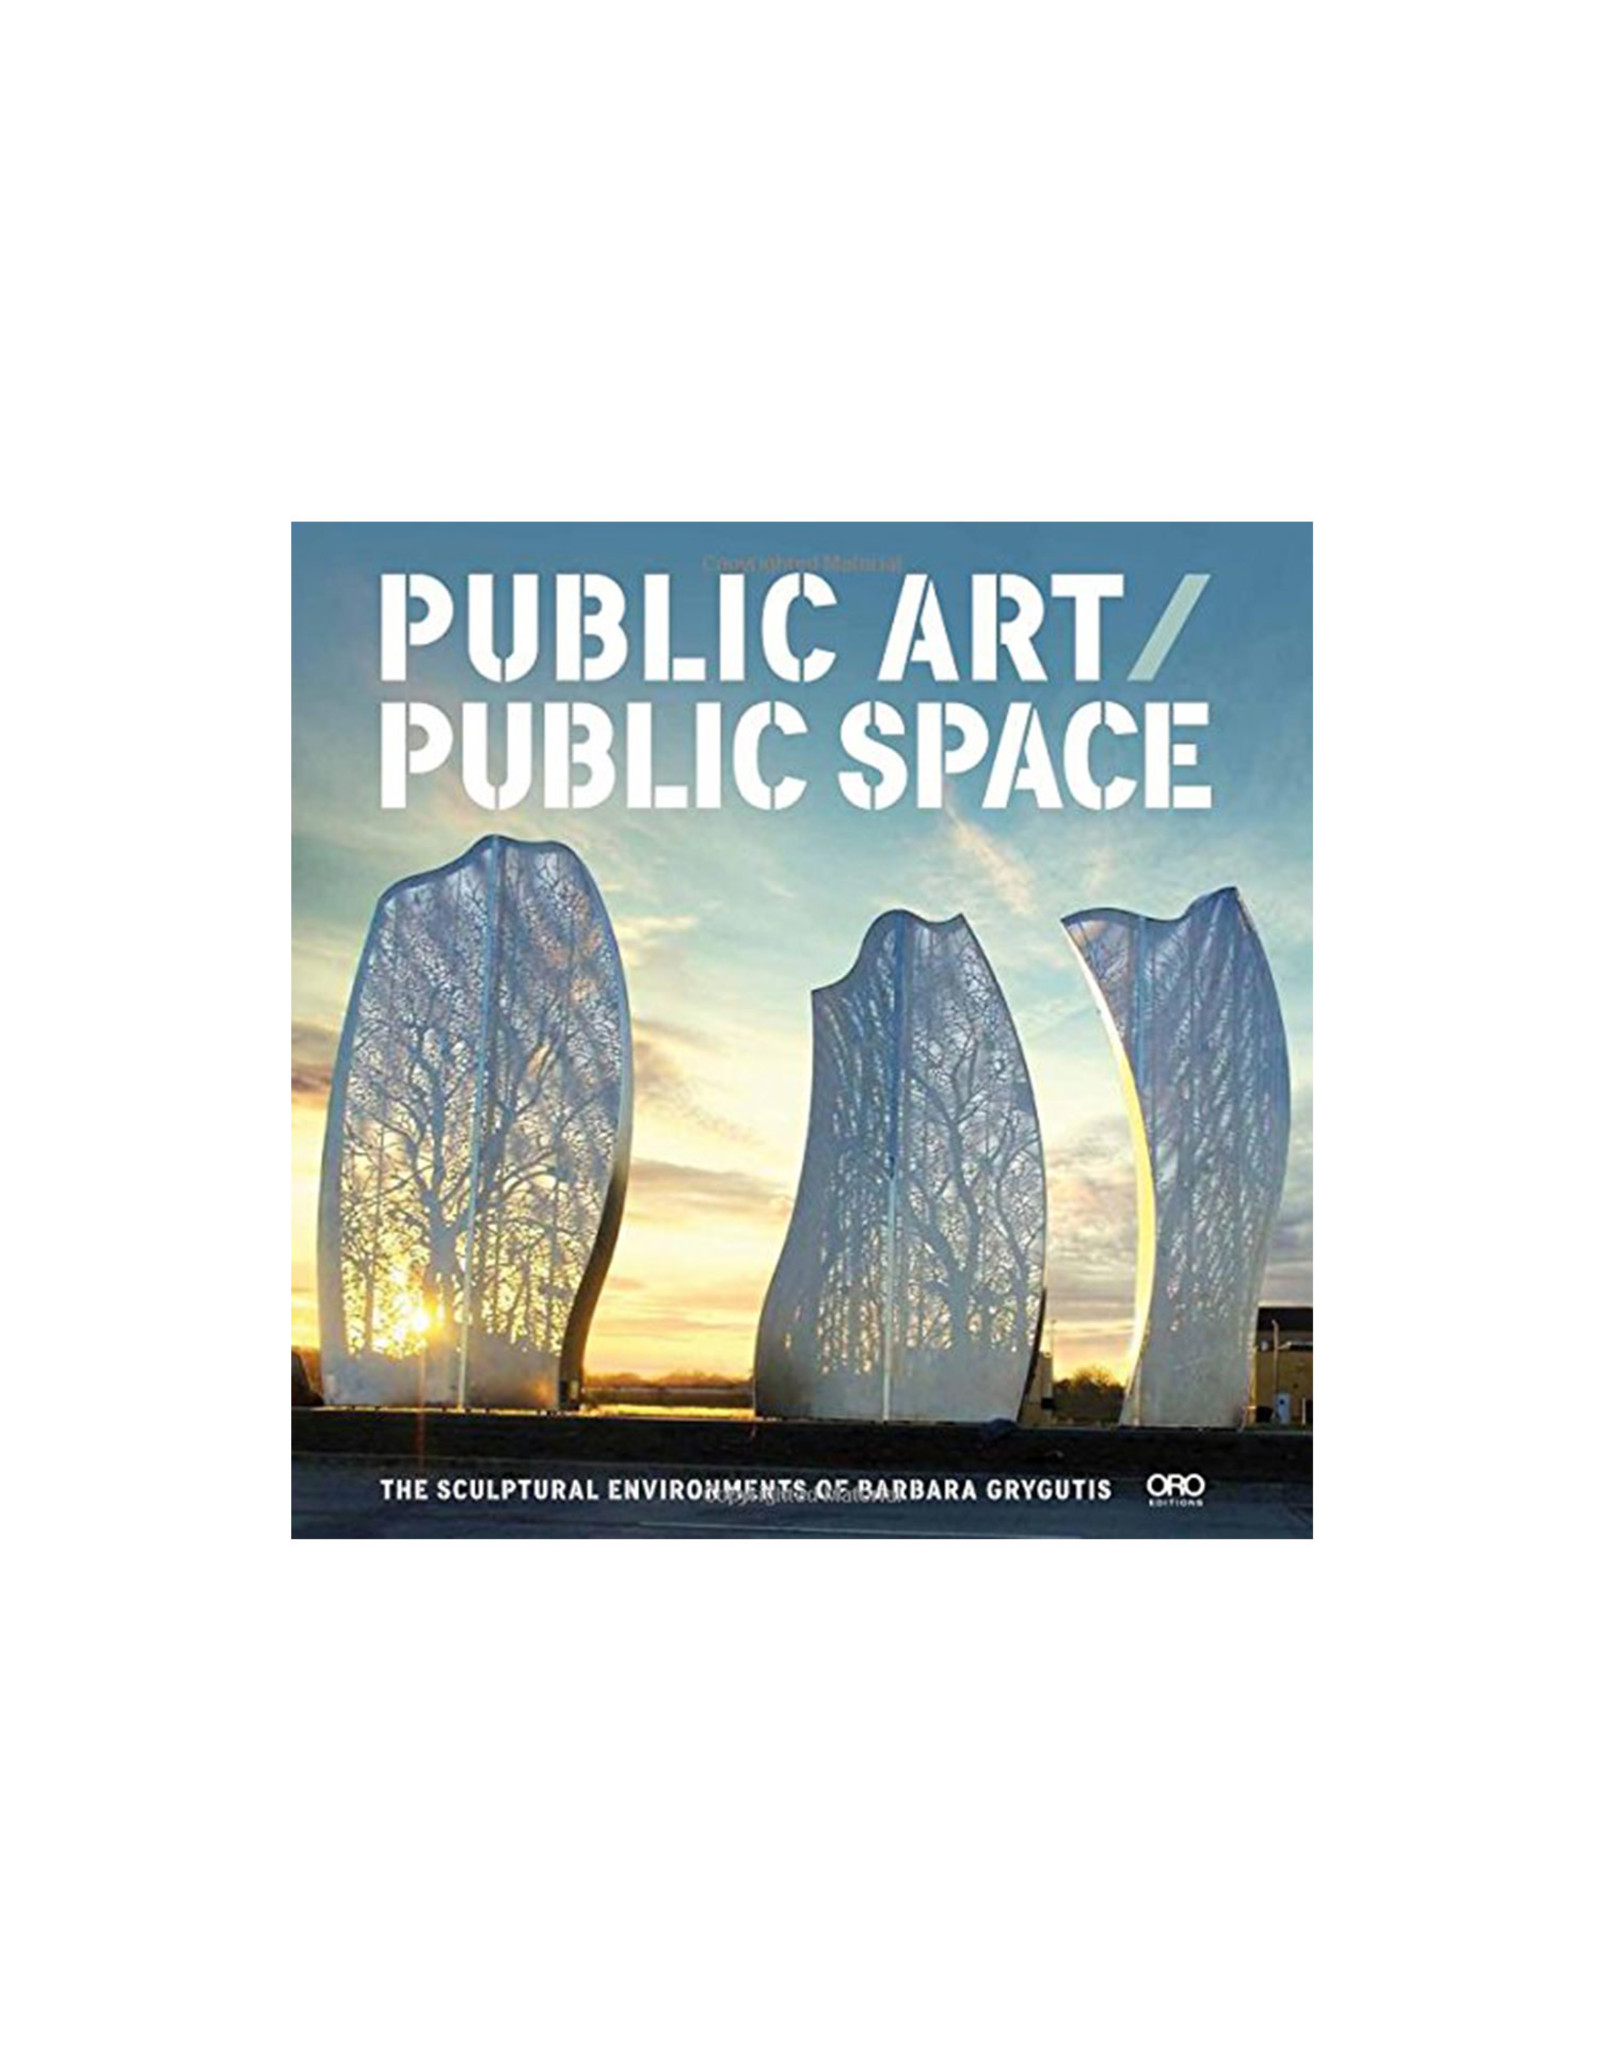 Public Art Public Space: The Sculptural Environments of Barbara Grygutis